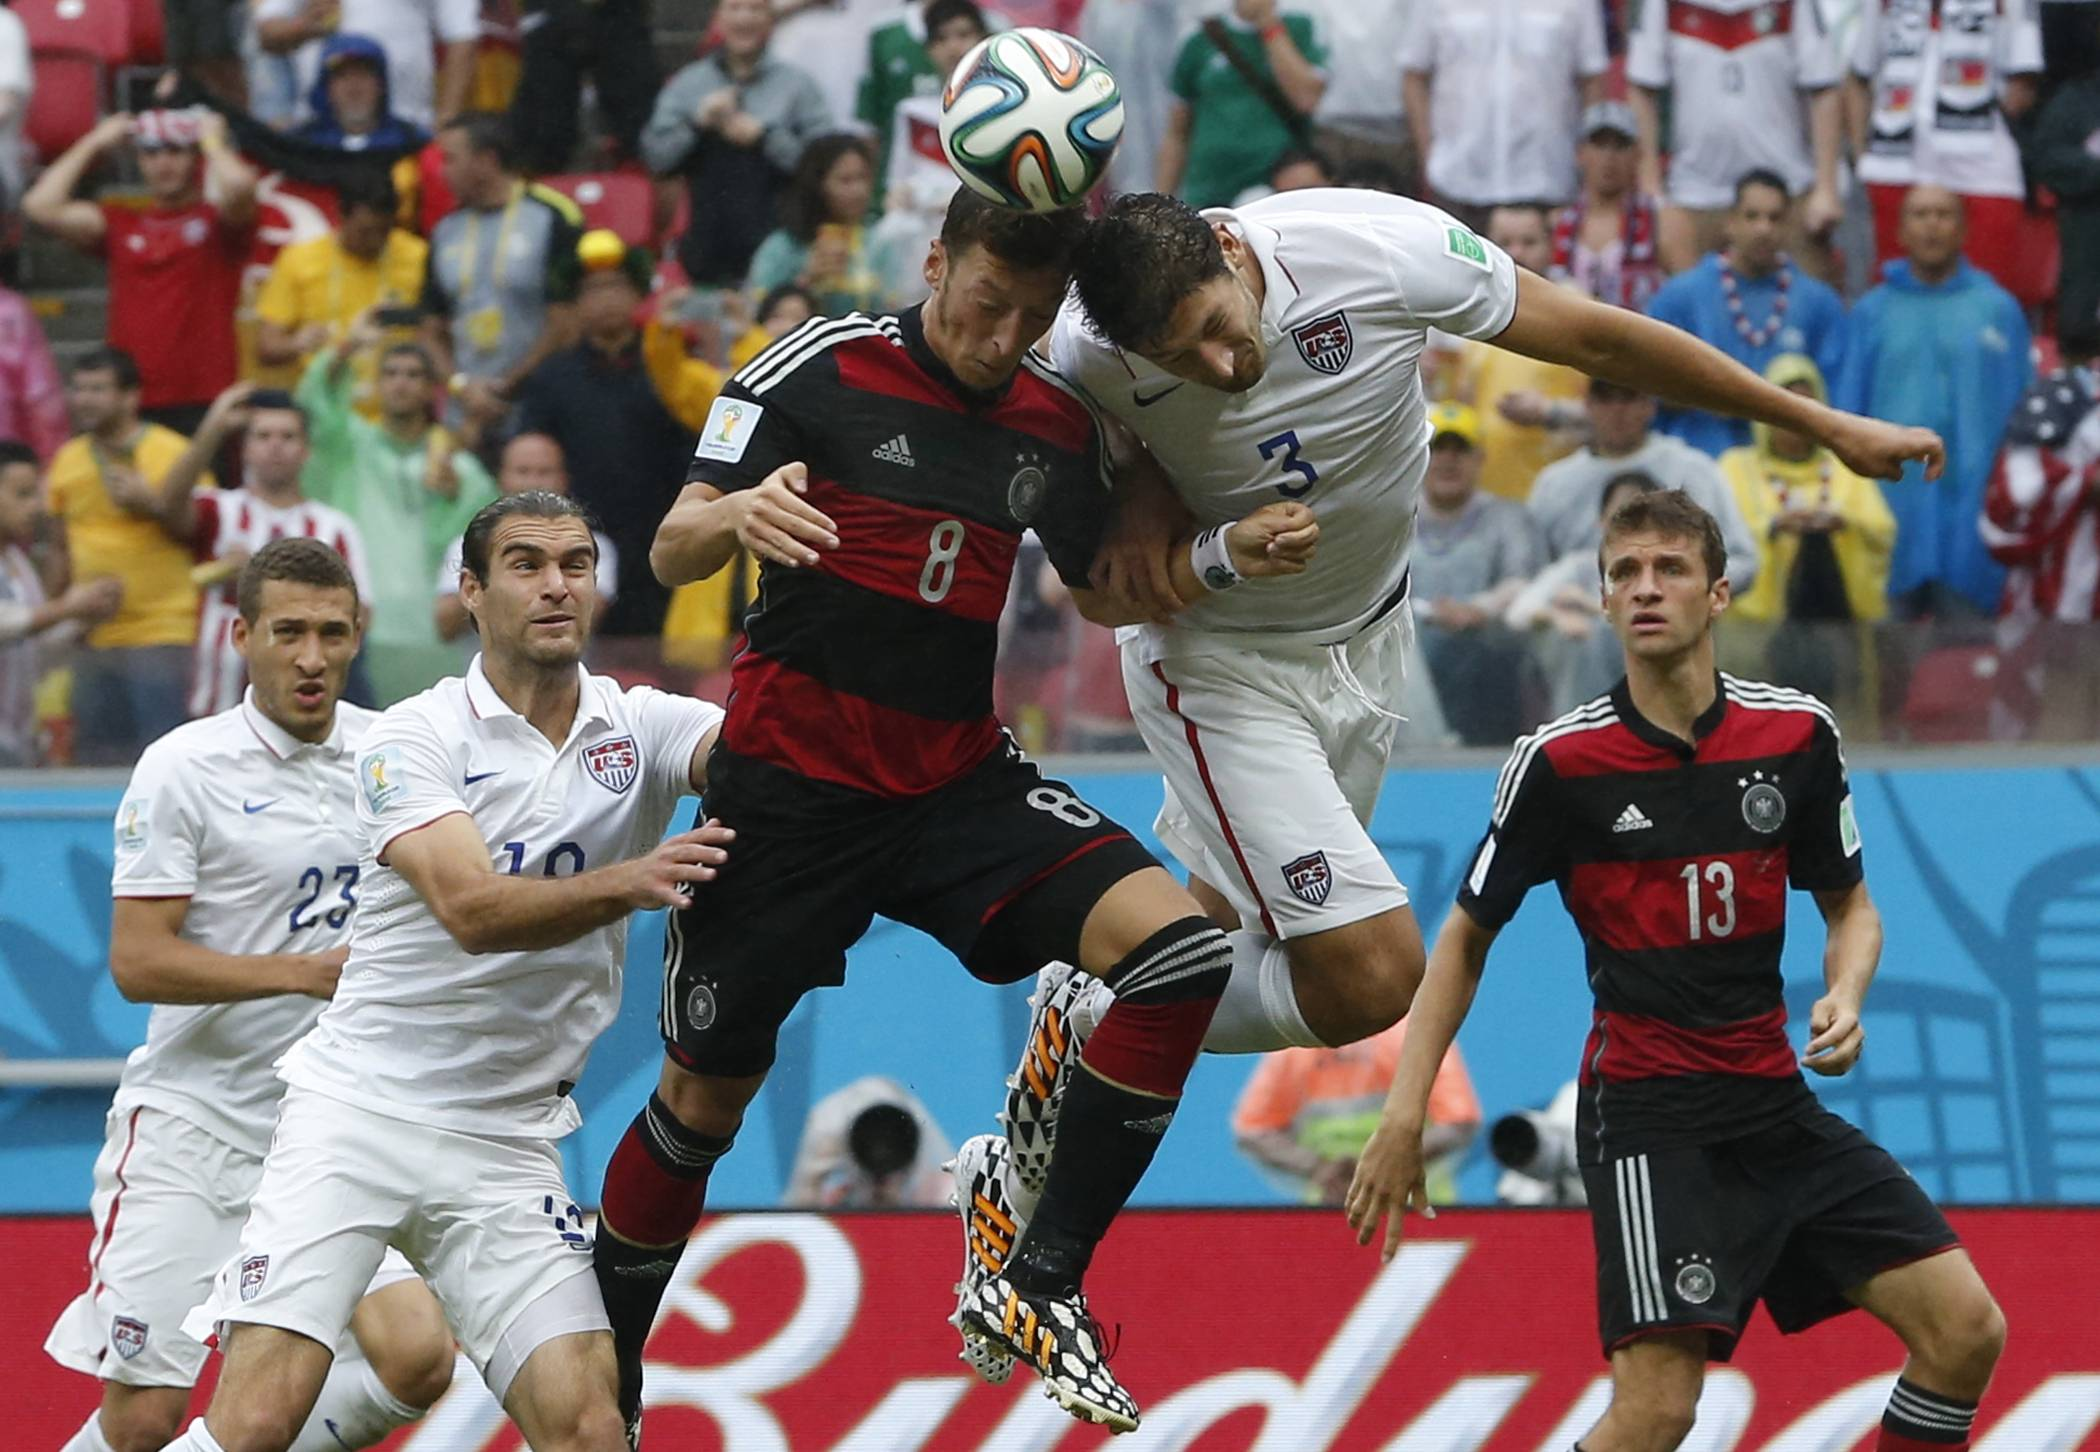 Germany's Mesut Ozil, center, goes for a header with United States' Omar Gonzalez as United States' Graham Zusi, left, looks on during the group G World Cup soccer match between the USA and Germany at the Arena Pernambuco in Recife, Brazil, Thursday, June 26, 2014.